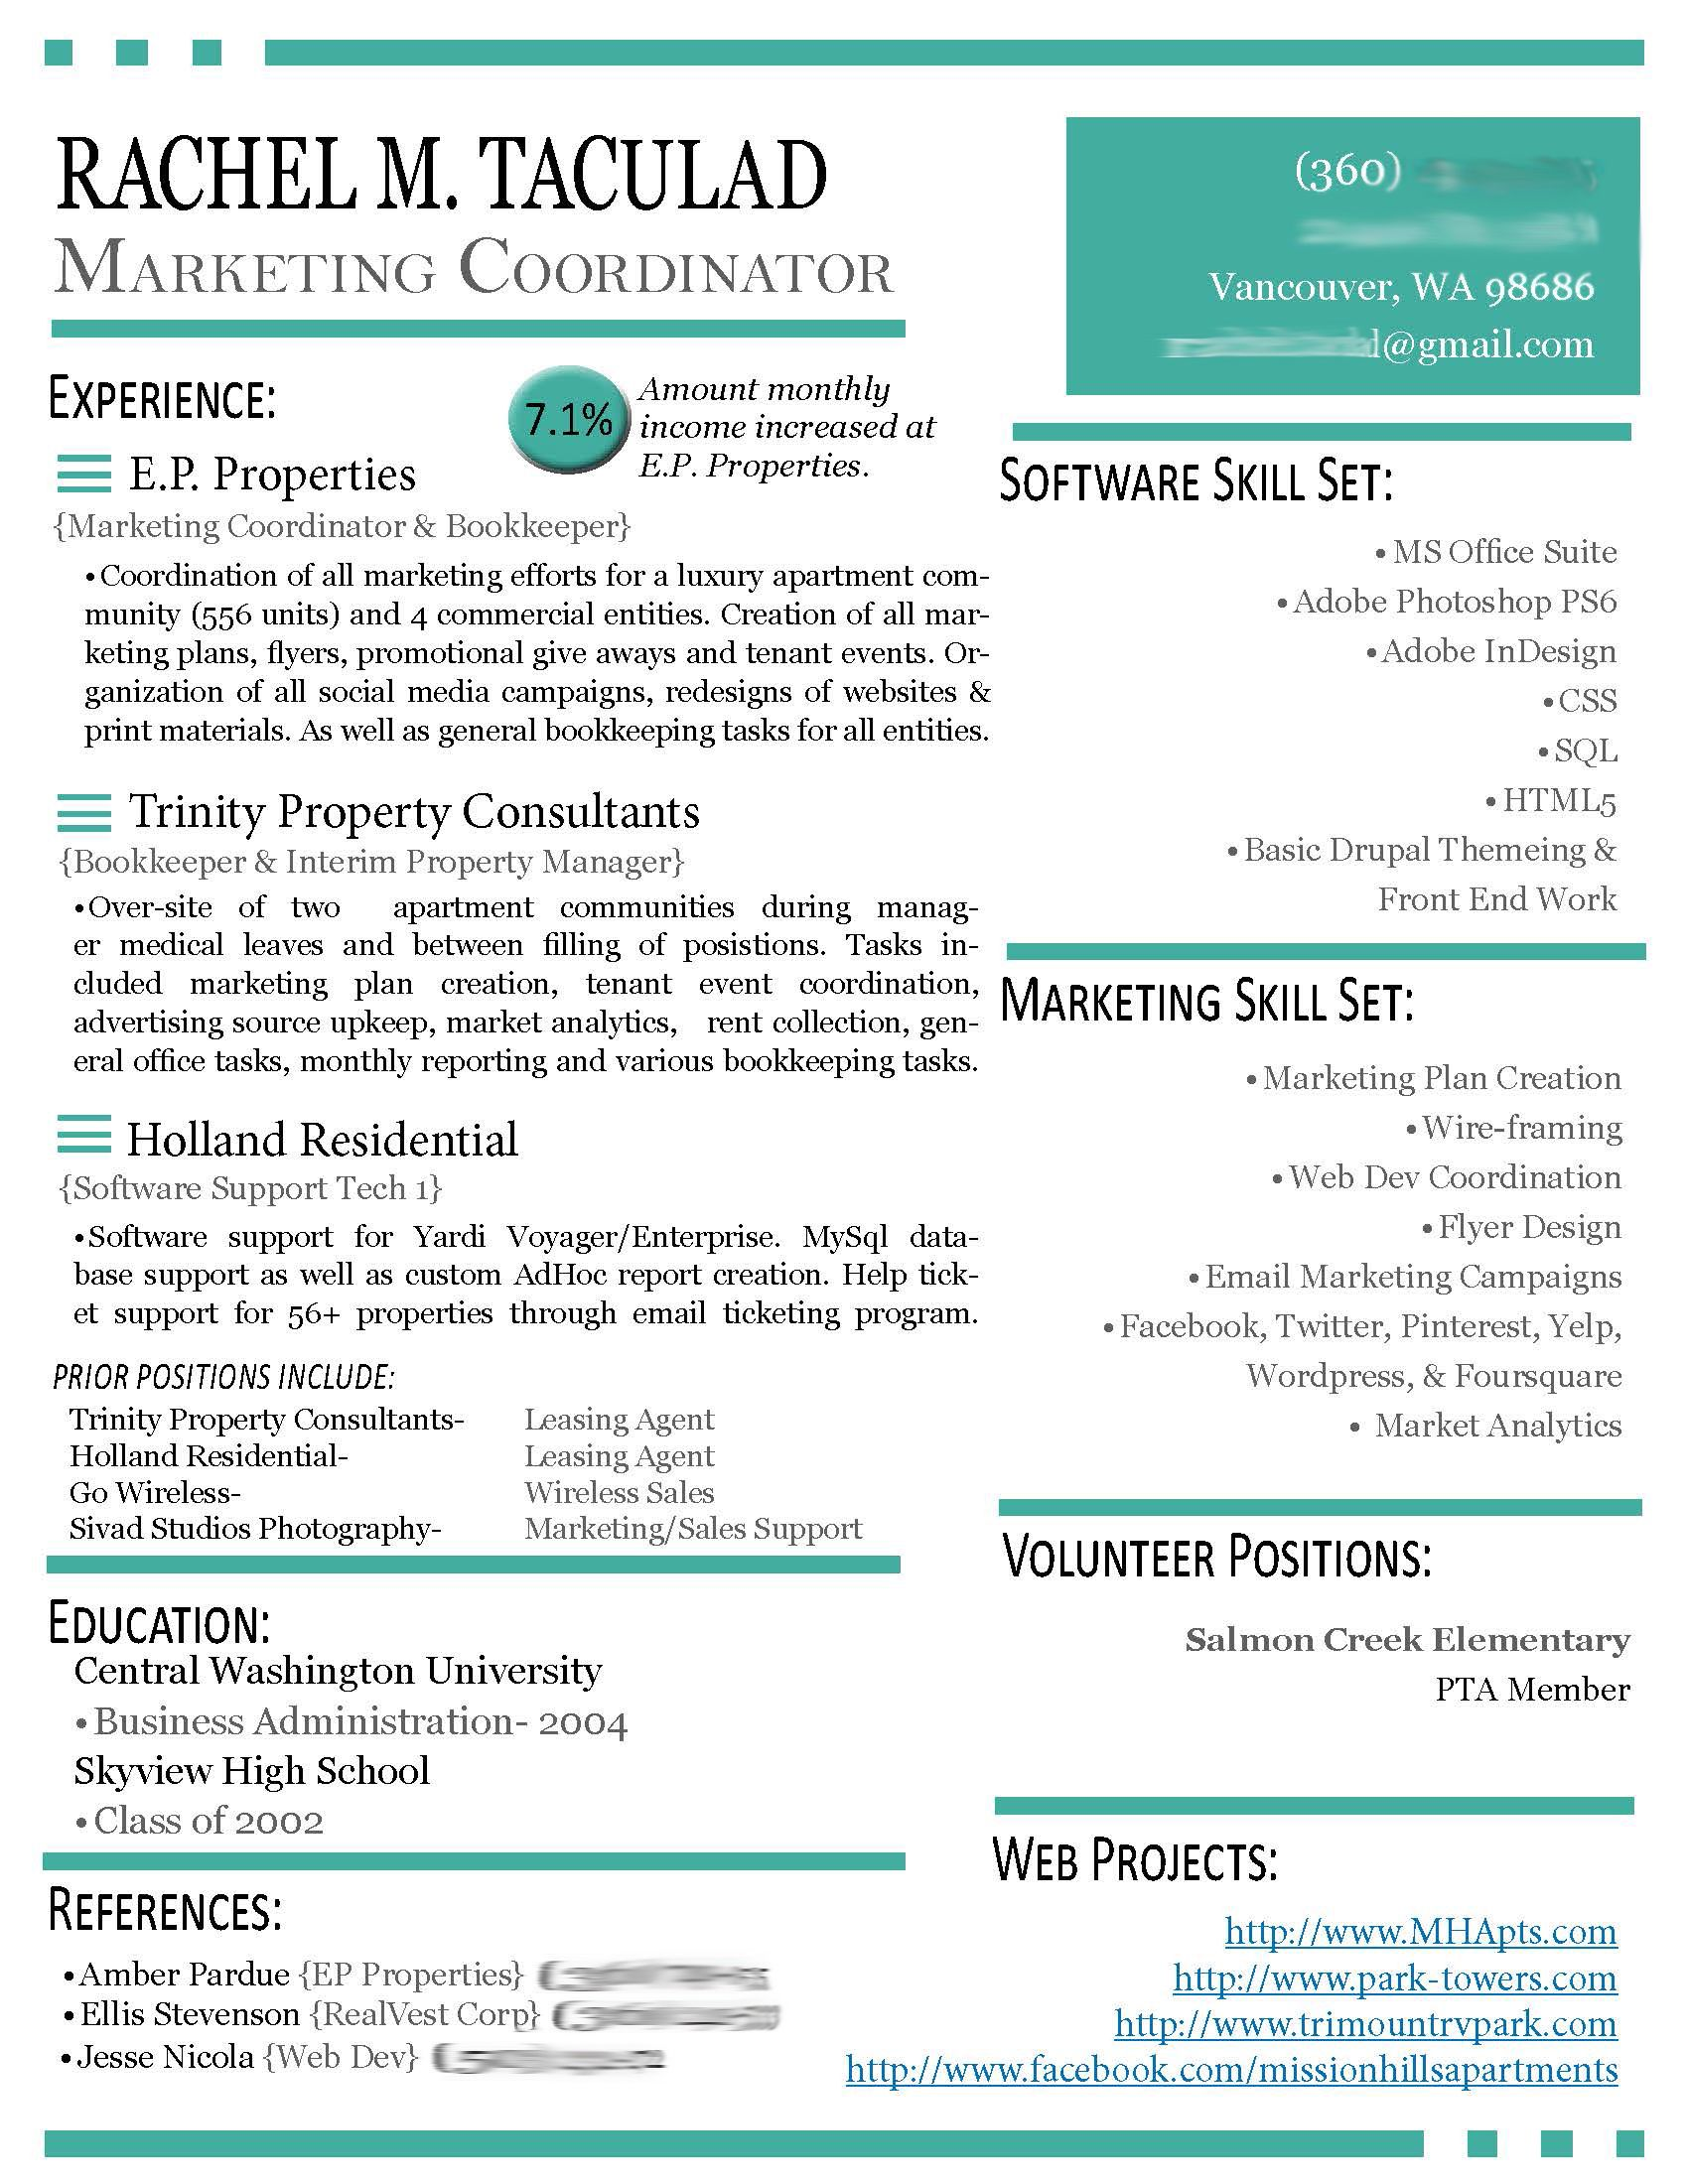 Opposenewapstandardsus  Unique  Images About Work Stuff On Pinterest  Resume Professional  With Heavenly  Images About Work Stuff On Pinterest  Resume Professional Resume Template And Resume Templates With Alluring Basic Resume Example Also Resume Objective For Teacher In Addition Optimal Resume Unc And Resume Don Ts As Well As Social Media Resume Sample Additionally Resume Inspiration From Pinterestcom With Opposenewapstandardsus  Heavenly  Images About Work Stuff On Pinterest  Resume Professional  With Alluring  Images About Work Stuff On Pinterest  Resume Professional Resume Template And Resume Templates And Unique Basic Resume Example Also Resume Objective For Teacher In Addition Optimal Resume Unc From Pinterestcom